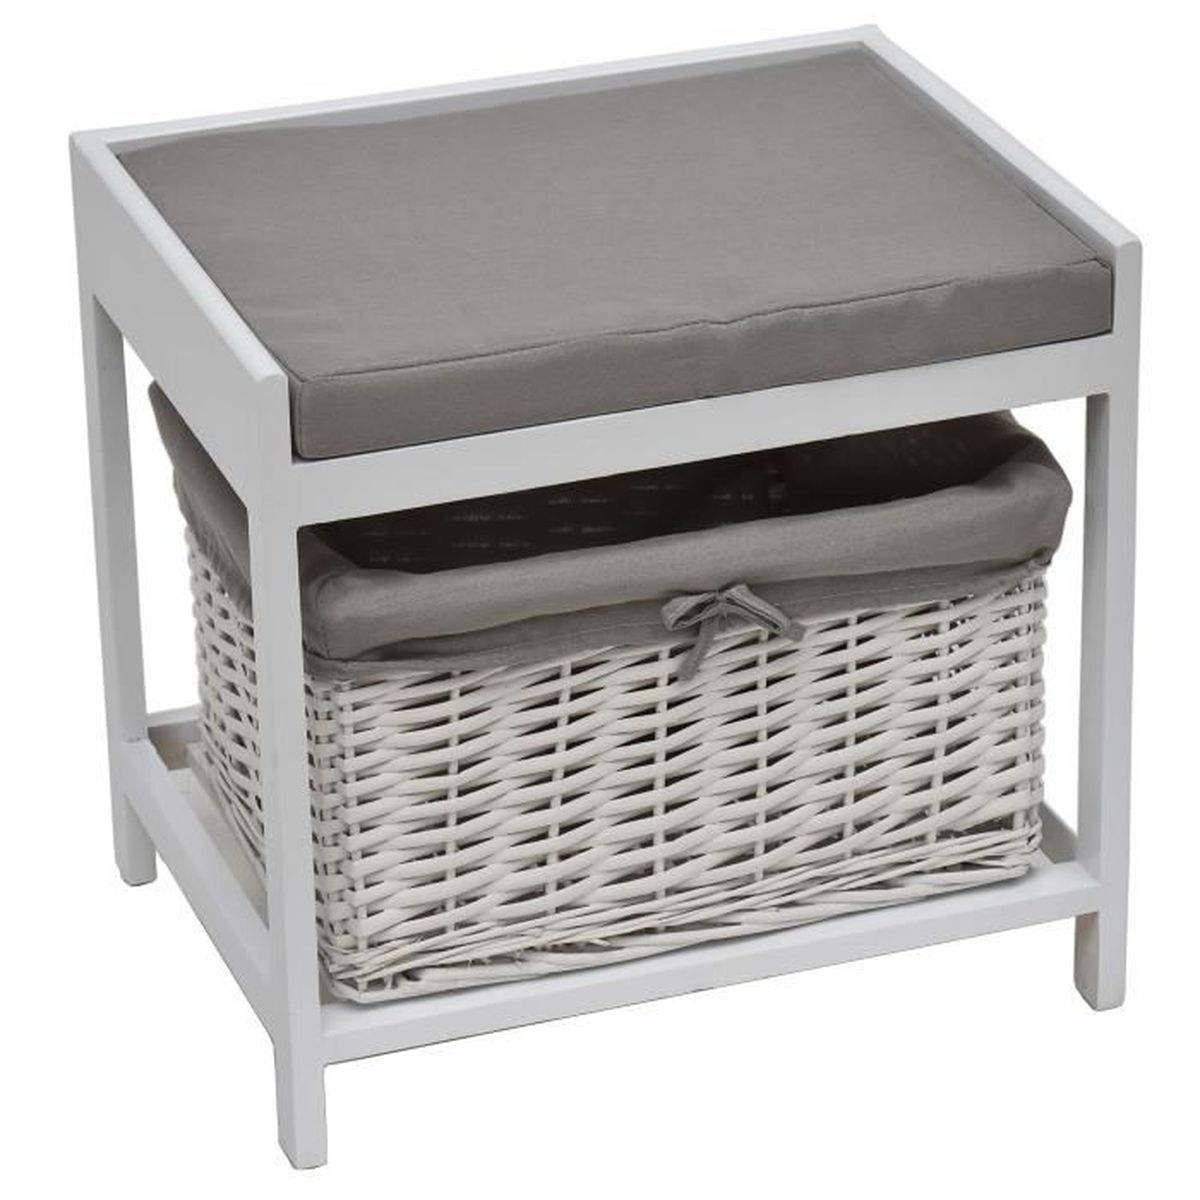 2 en 1 tabouret pouf meuble de salle de bain large gris et blanc blanc achat vente. Black Bedroom Furniture Sets. Home Design Ideas